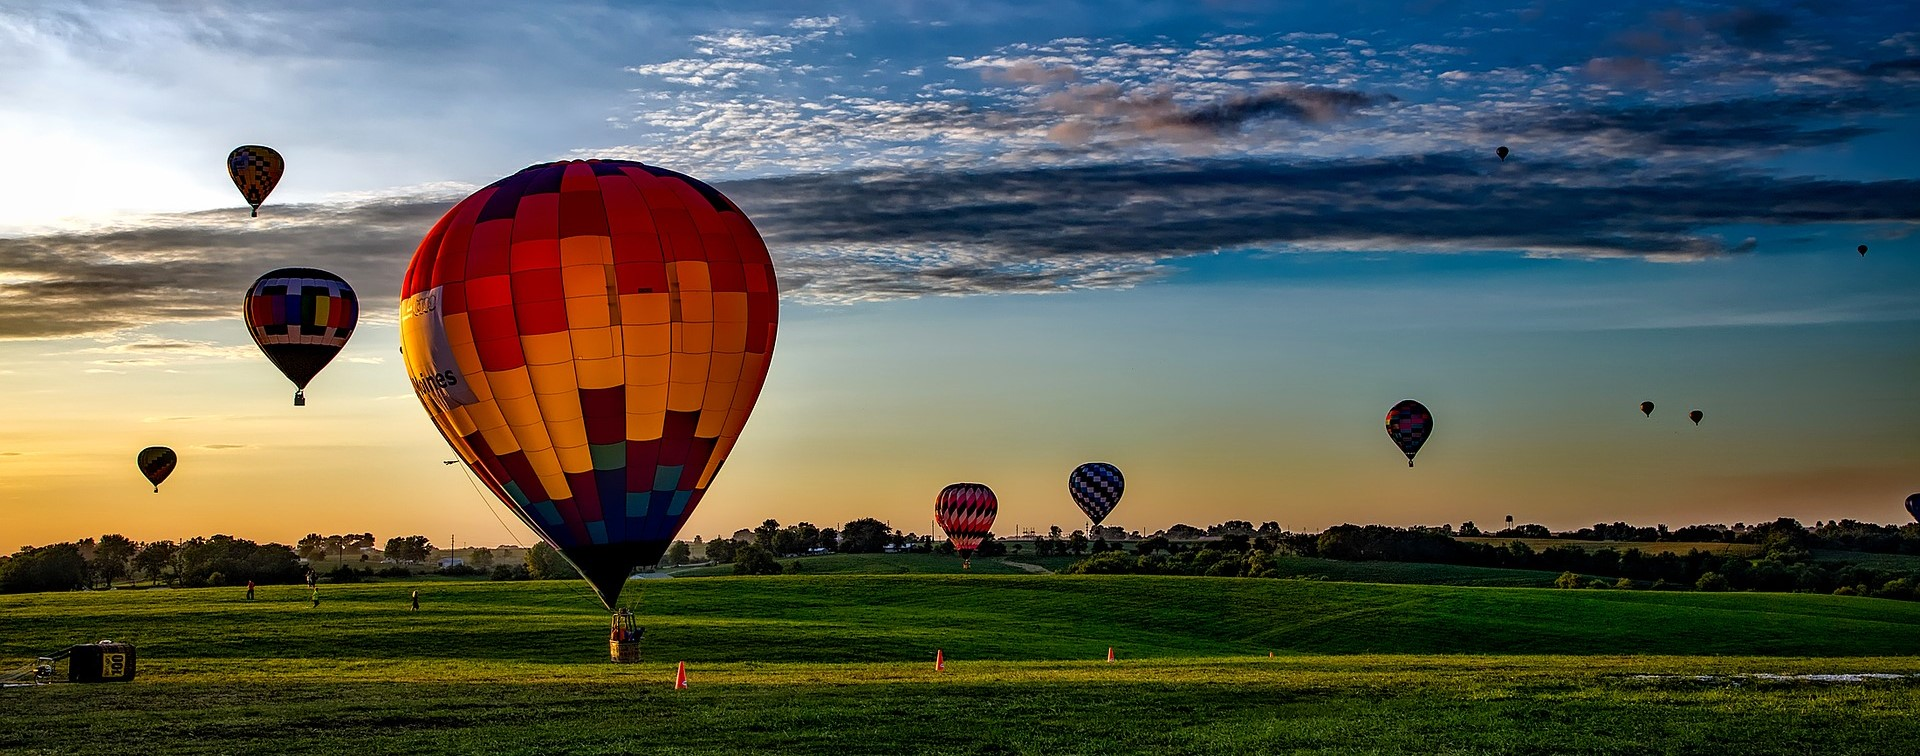 Hot Air Balloon Festival in Iowa | Kids Car Donations